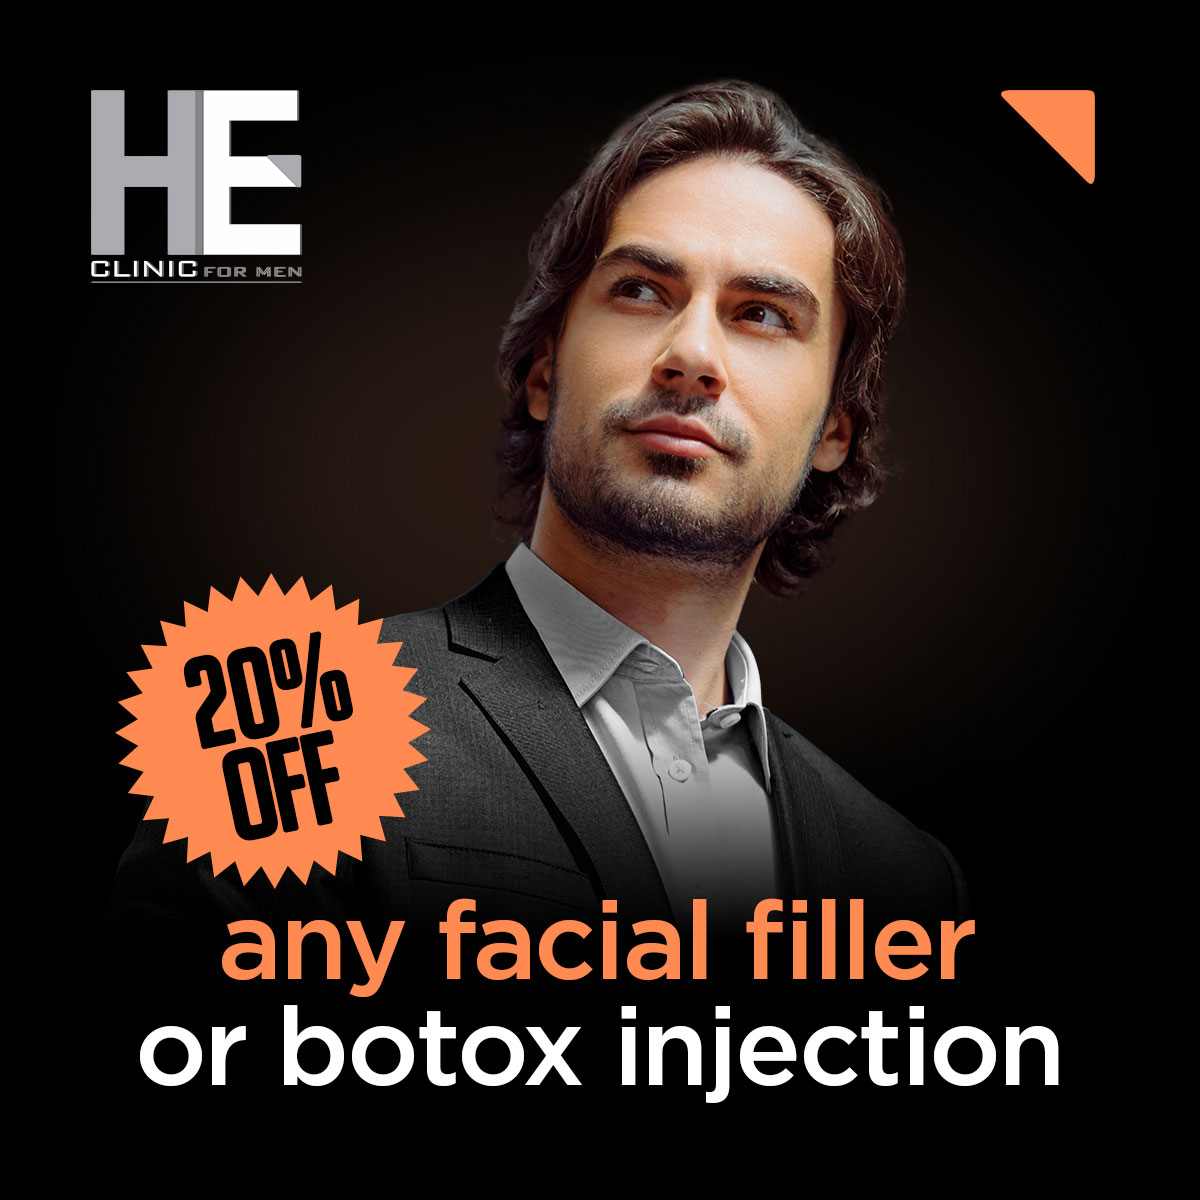 botox promotion at HE Clinic